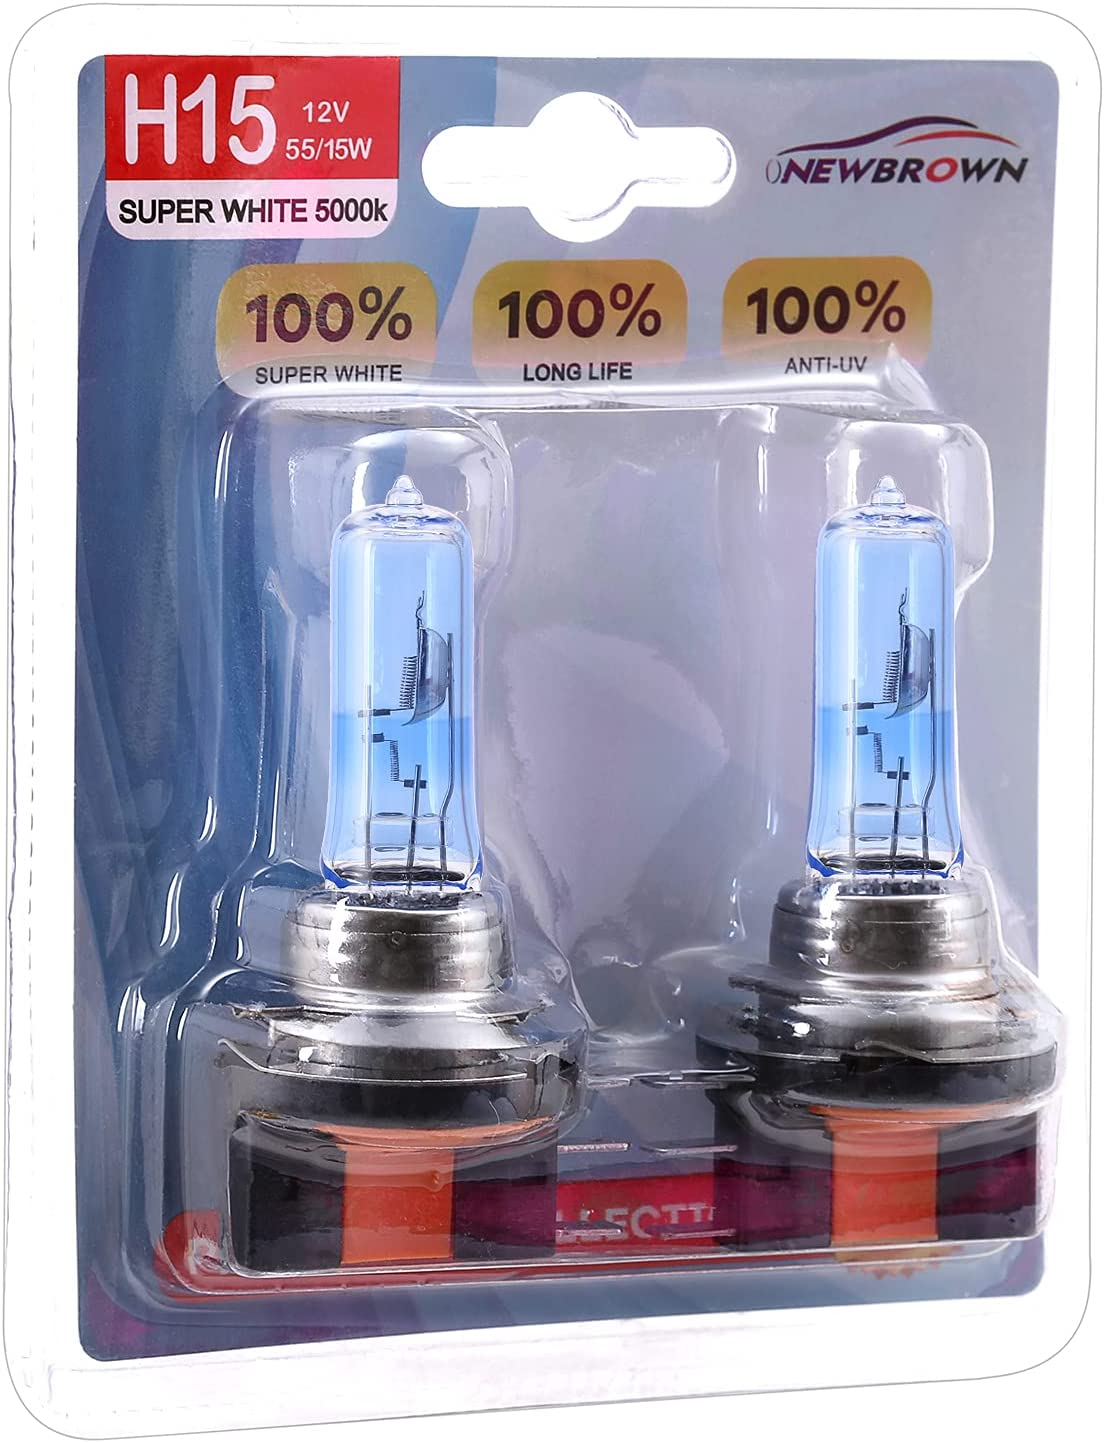 In stock H15 Headlight Bulbs with 40% Super 15 12V Ranking TOP19 PGJ23 55W light White